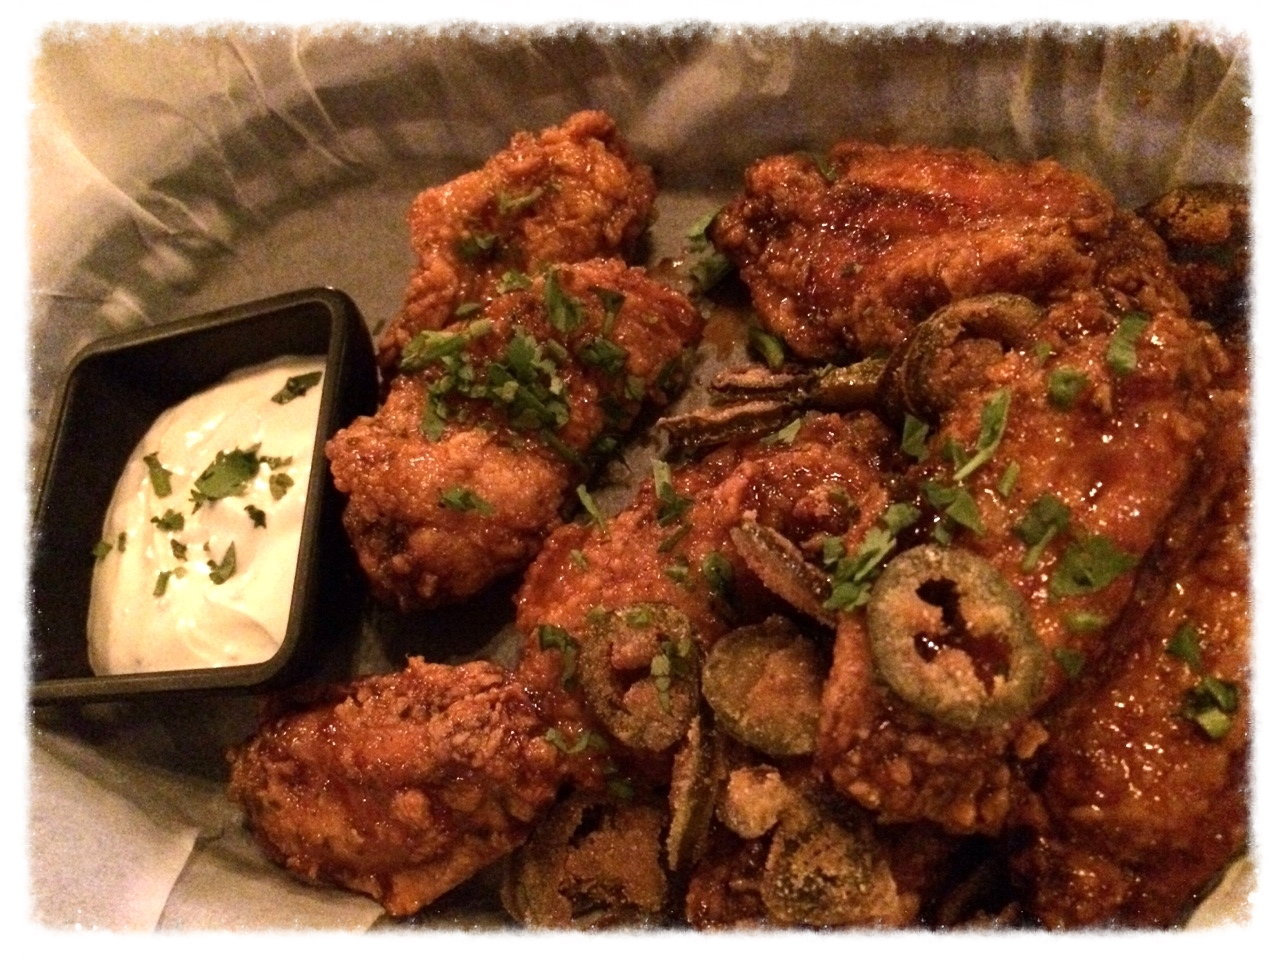 """Honey Tequila Chicken Wings - """"Original recipe with a Mexican flair! Wings coated in our sweet & spicy honey tequila sauce, served with deep-fried masa-battered jalapeños and blue cheese dipping sauce. 12 000won.""""  These wings are SO good. Apparently there is a proper Vatos way to enjoy these babies. Take a fresh hot wing, dip it in the creamy blue cheese dip and then top it off with a crispy juicy deep fried jalapeno and your bite is full of exploding flavours that just go oh-so-well together. Korean-mexican may not be the first place you think of for chicken wings, but these are the best!  You can even get them delivered, along with all their other great menu items, right to your doorstep with  Y-not delivery ! If they're not as hot when they get to you, just stick them in the toaster oven for a few minutes and they are just as good as dining in!"""